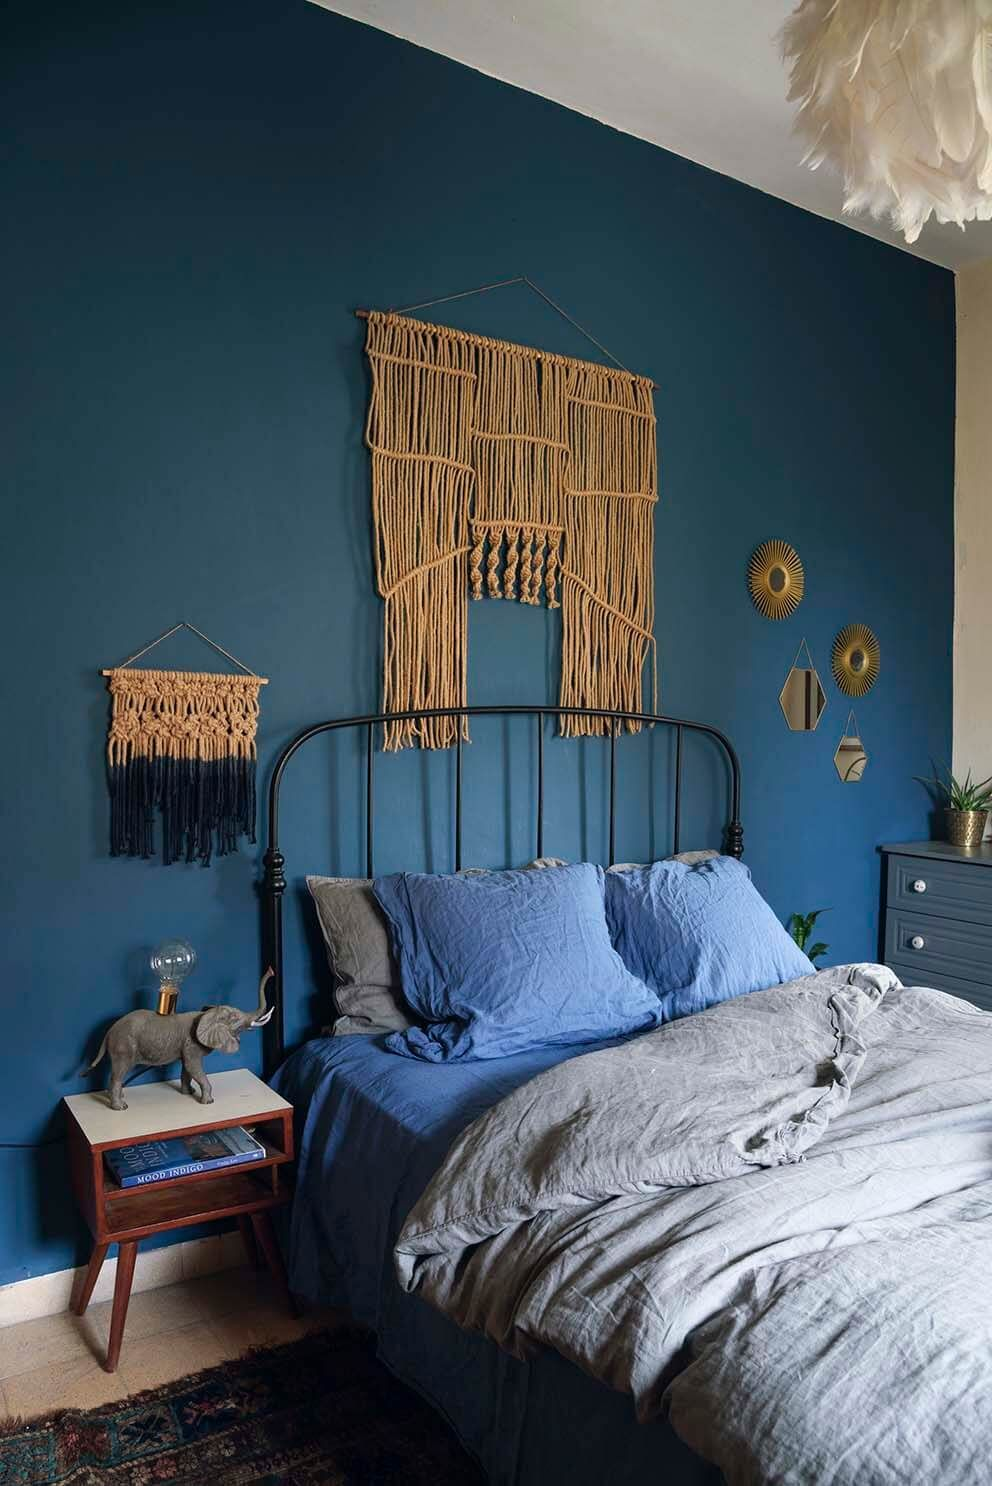 This Is How To Decorate With Blue Walls Blue Bedroom Decor